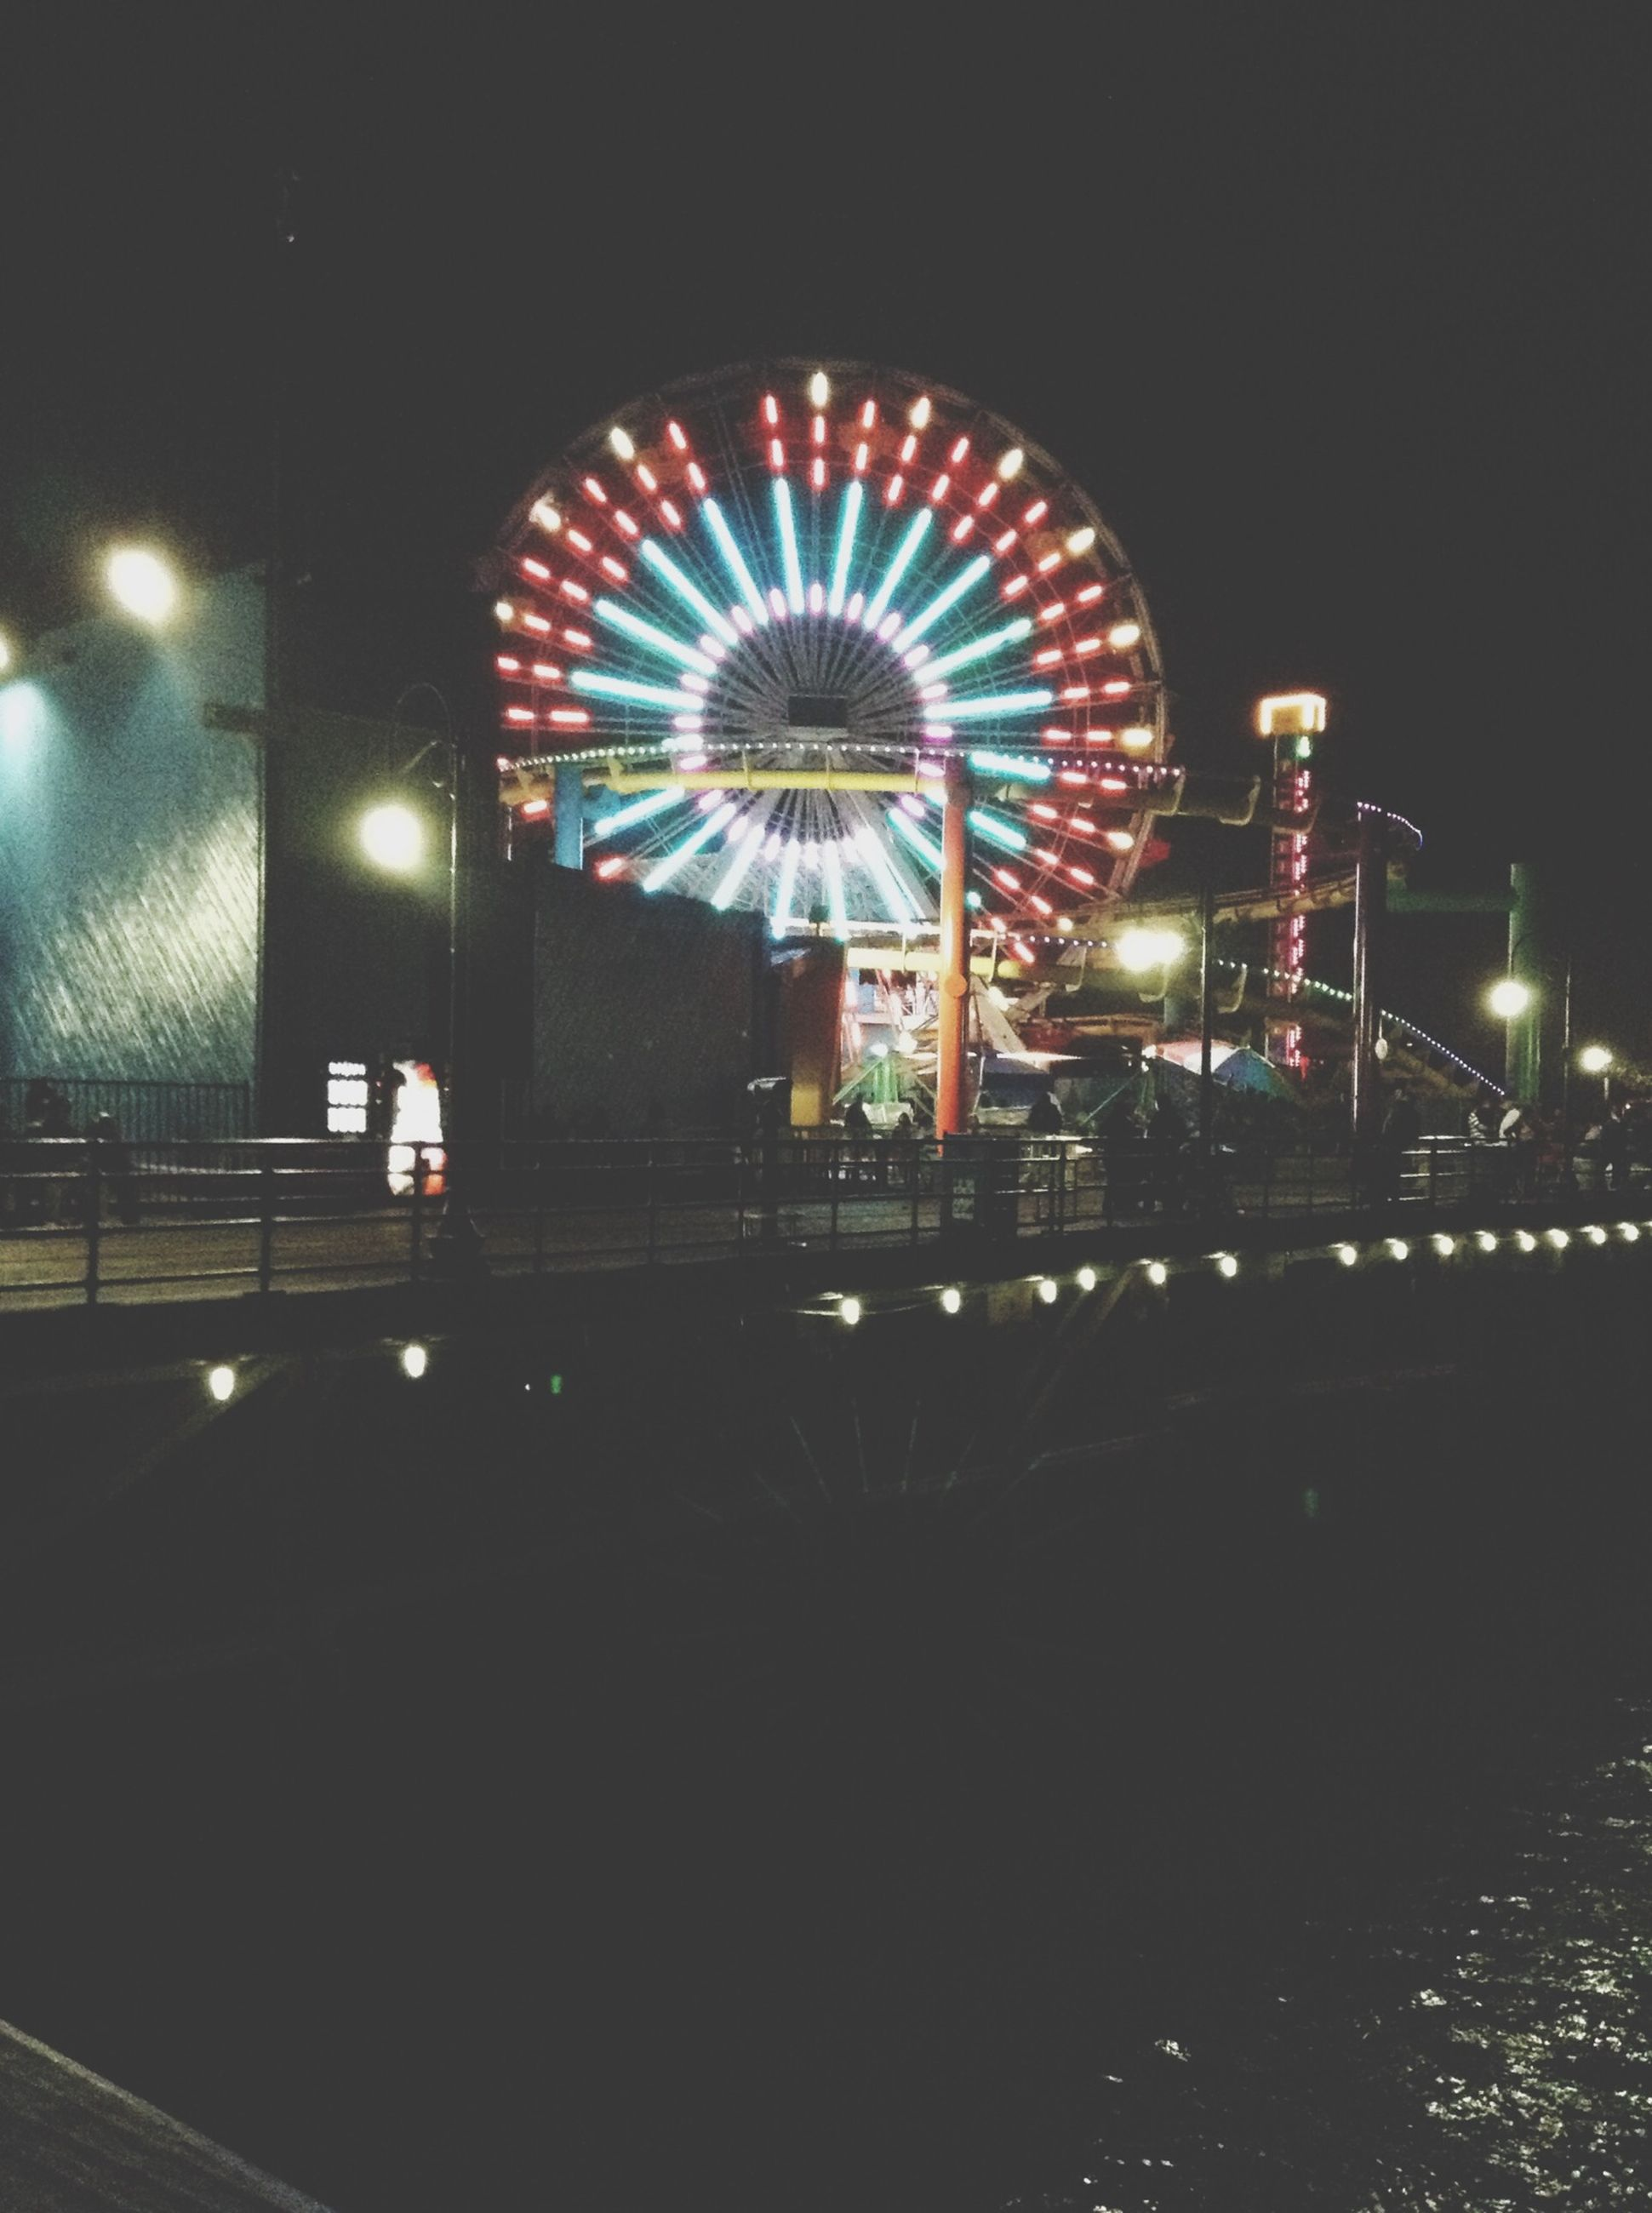 illuminated, night, arts culture and entertainment, built structure, architecture, amusement park ride, ferris wheel, amusement park, lighting equipment, building exterior, city, multi colored, low angle view, incidental people, sky, clear sky, outdoors, circle, travel destinations, decoration